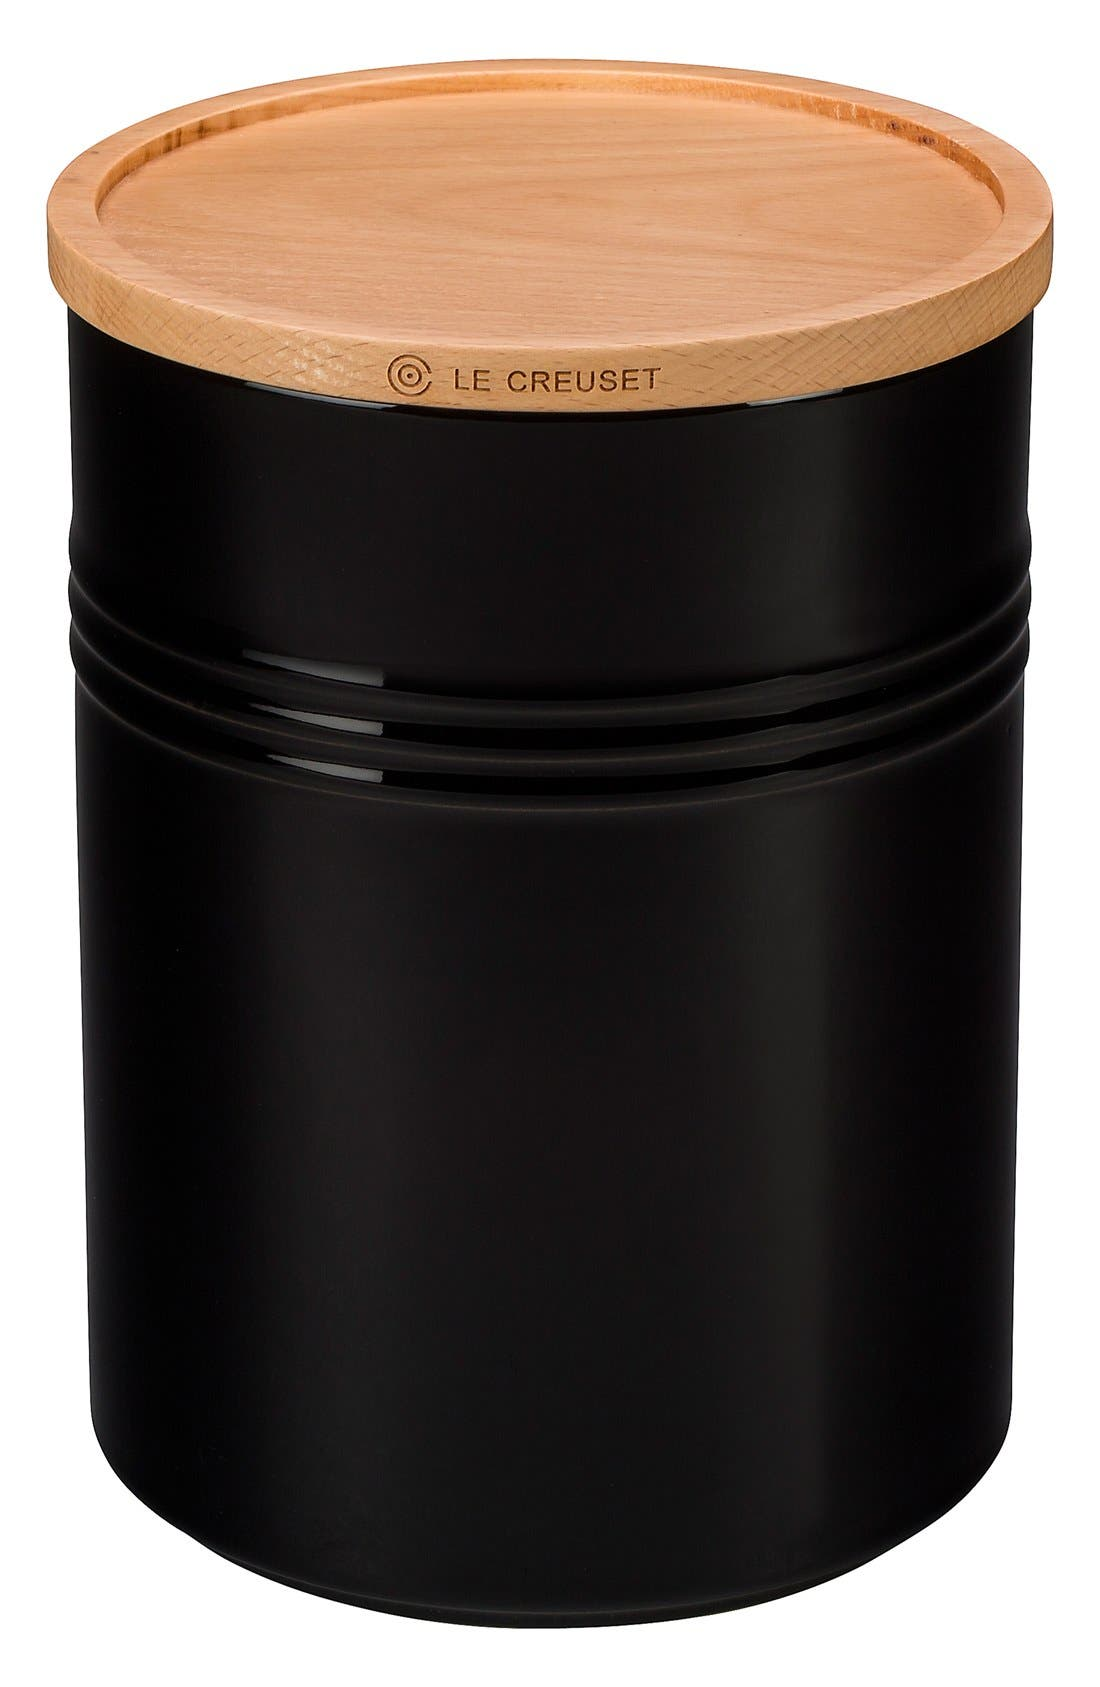 LE CREUSET Glazed 22 Ounce Stoneware Storage Canister with Wooden Lid, Main, color, BLACK ONYX